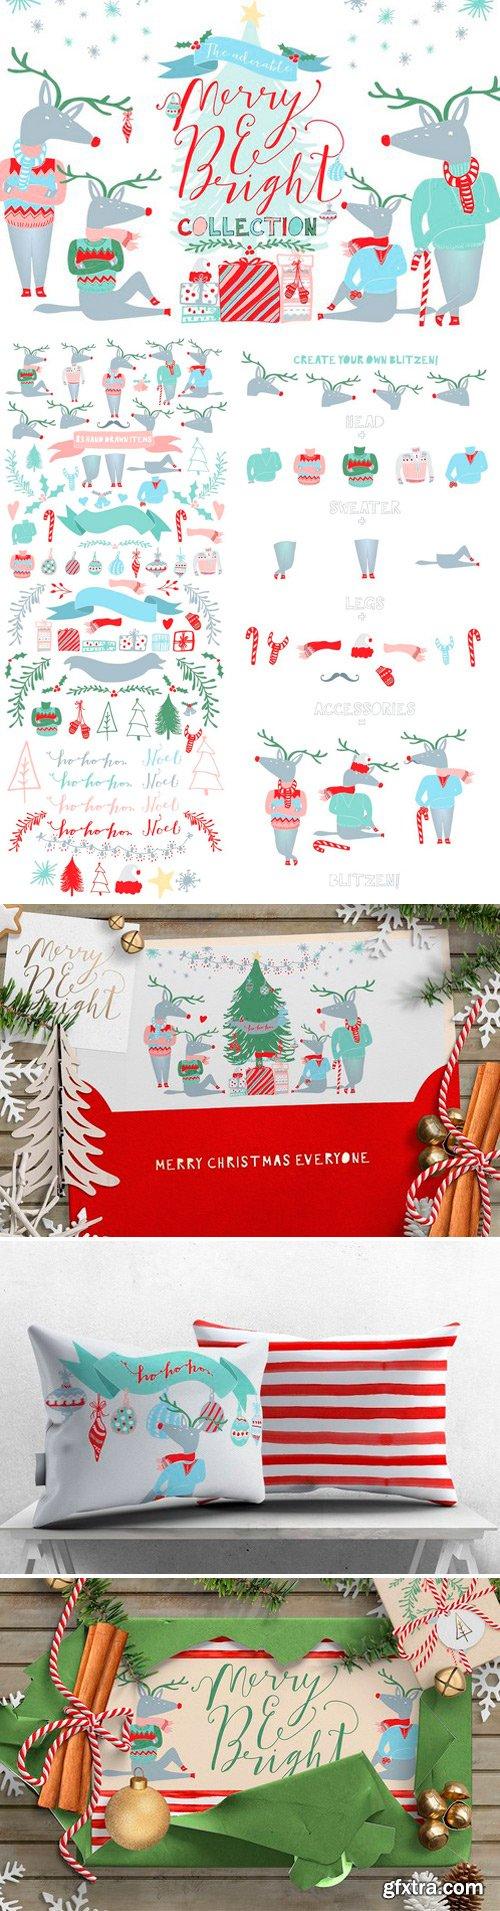 CM - Merry and Bright Christmas Clipart 421466